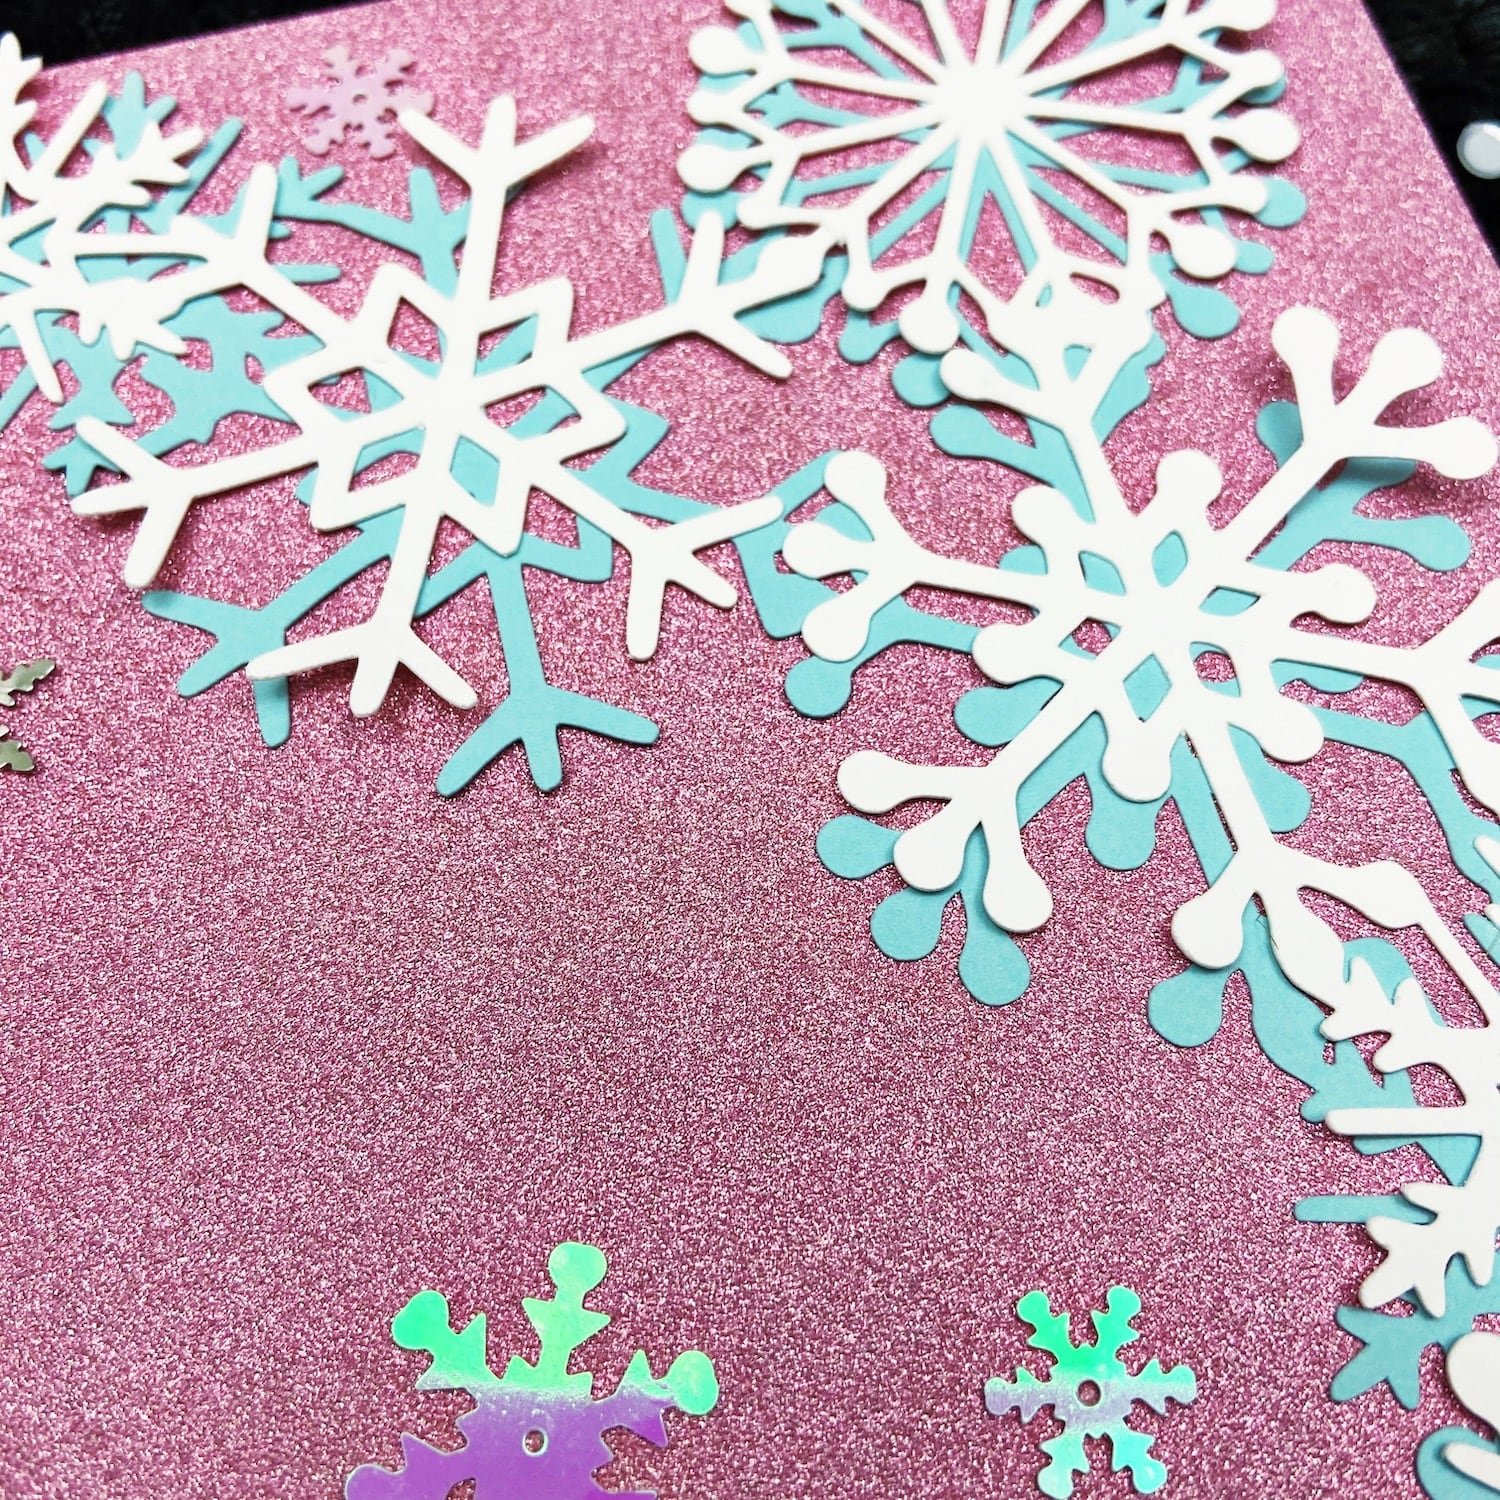 Sapphire Pink MirriSparkle Paper with snowflakes